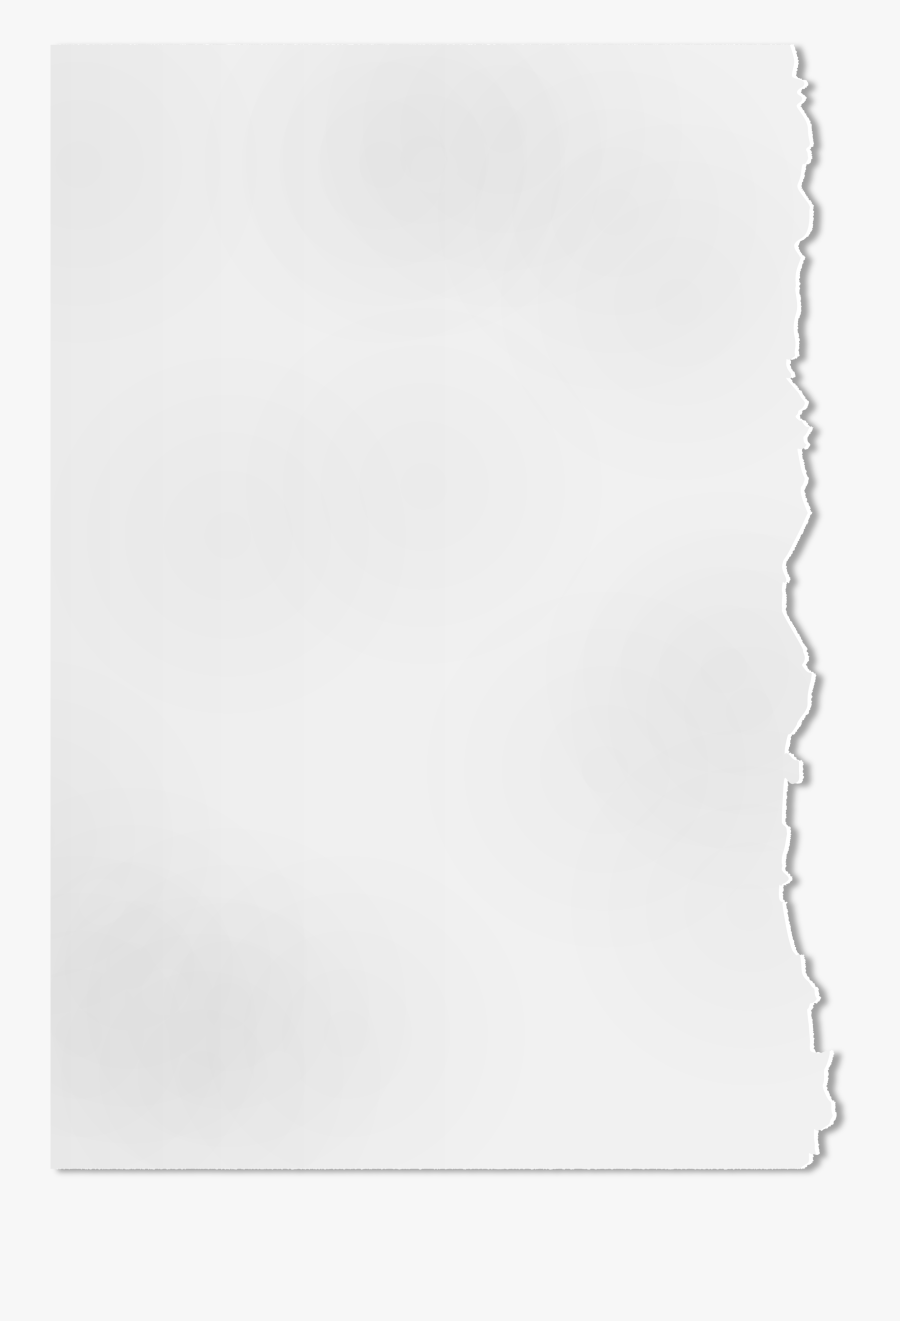 Images In Collection Page - Piece Of Ripped Paper, Transparent Clipart